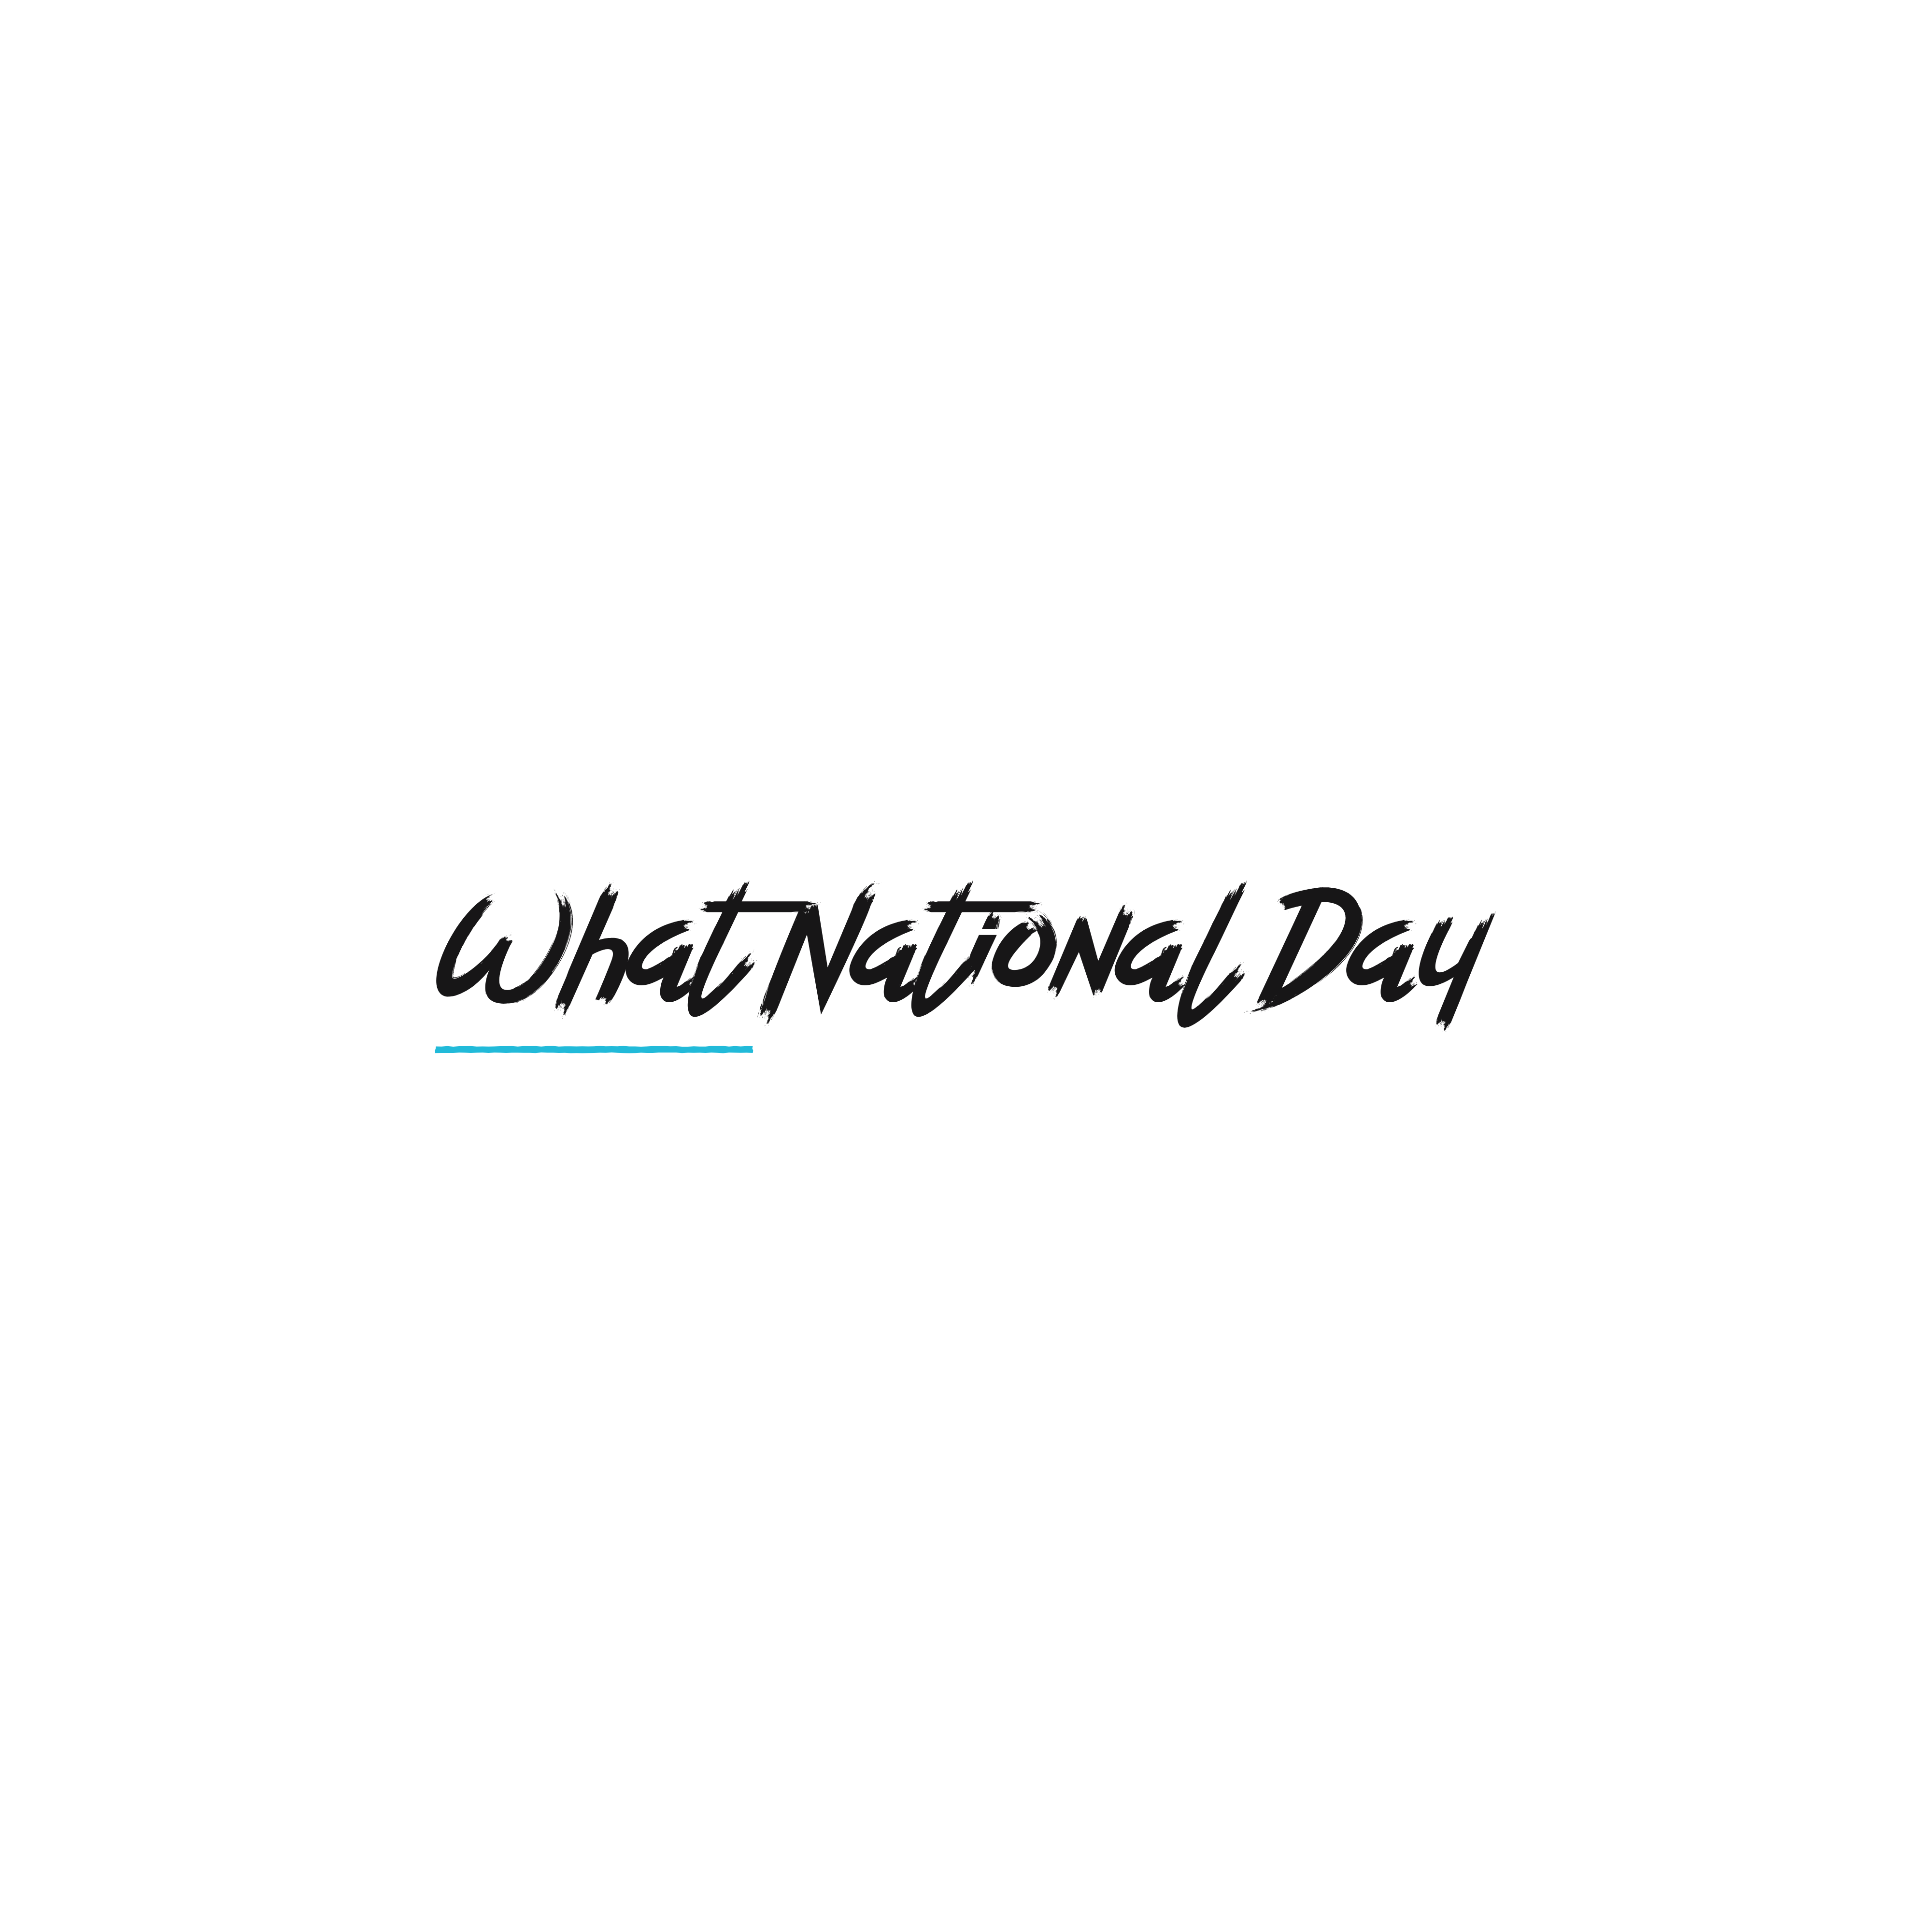 What National Day